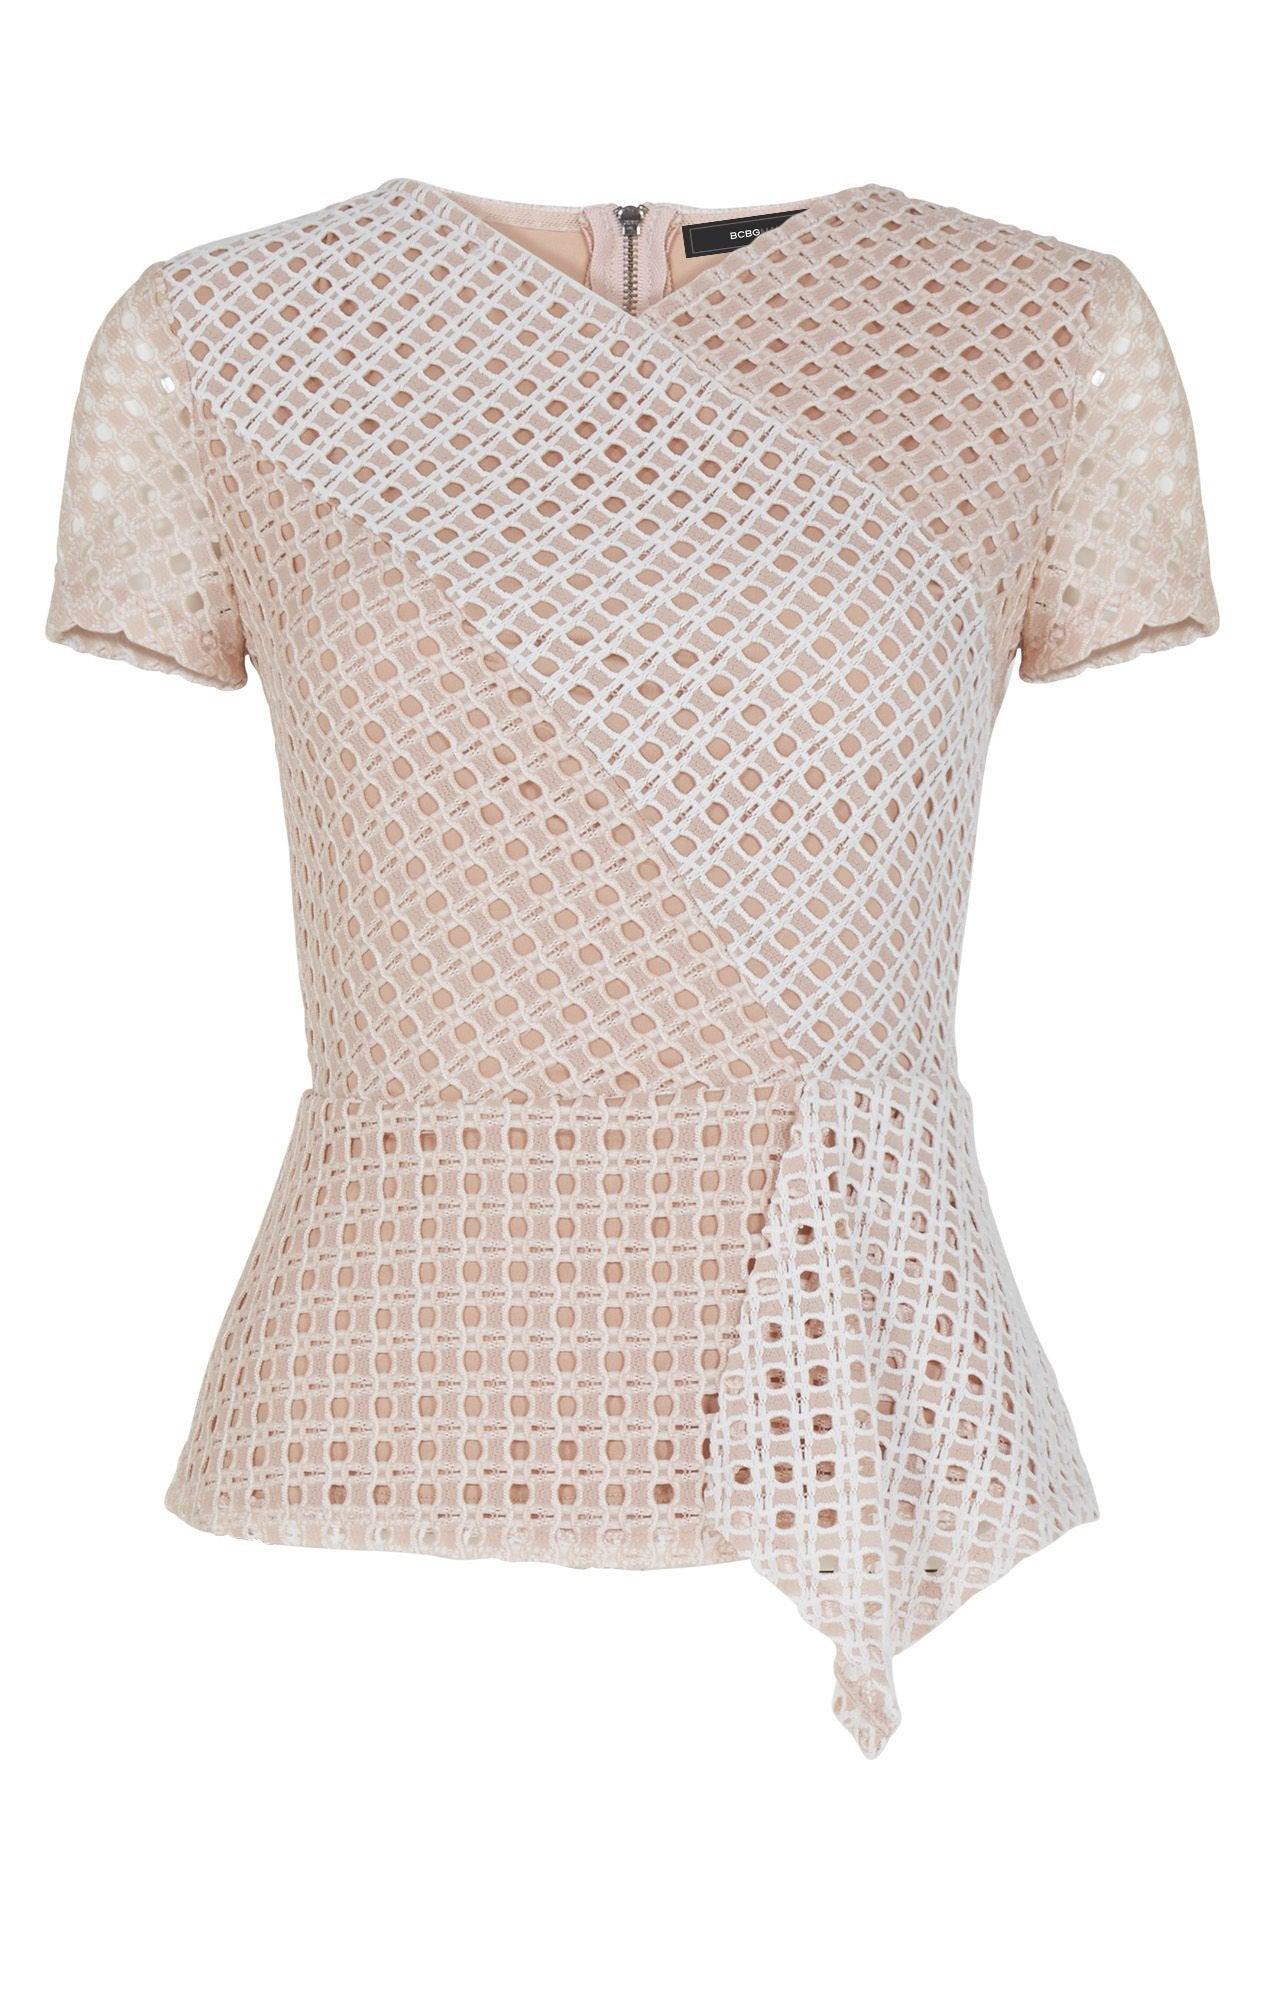 Woman wearing a top rental from BCBGMAXAZRIA called Kaleigh Lace-blocked Peplum Top